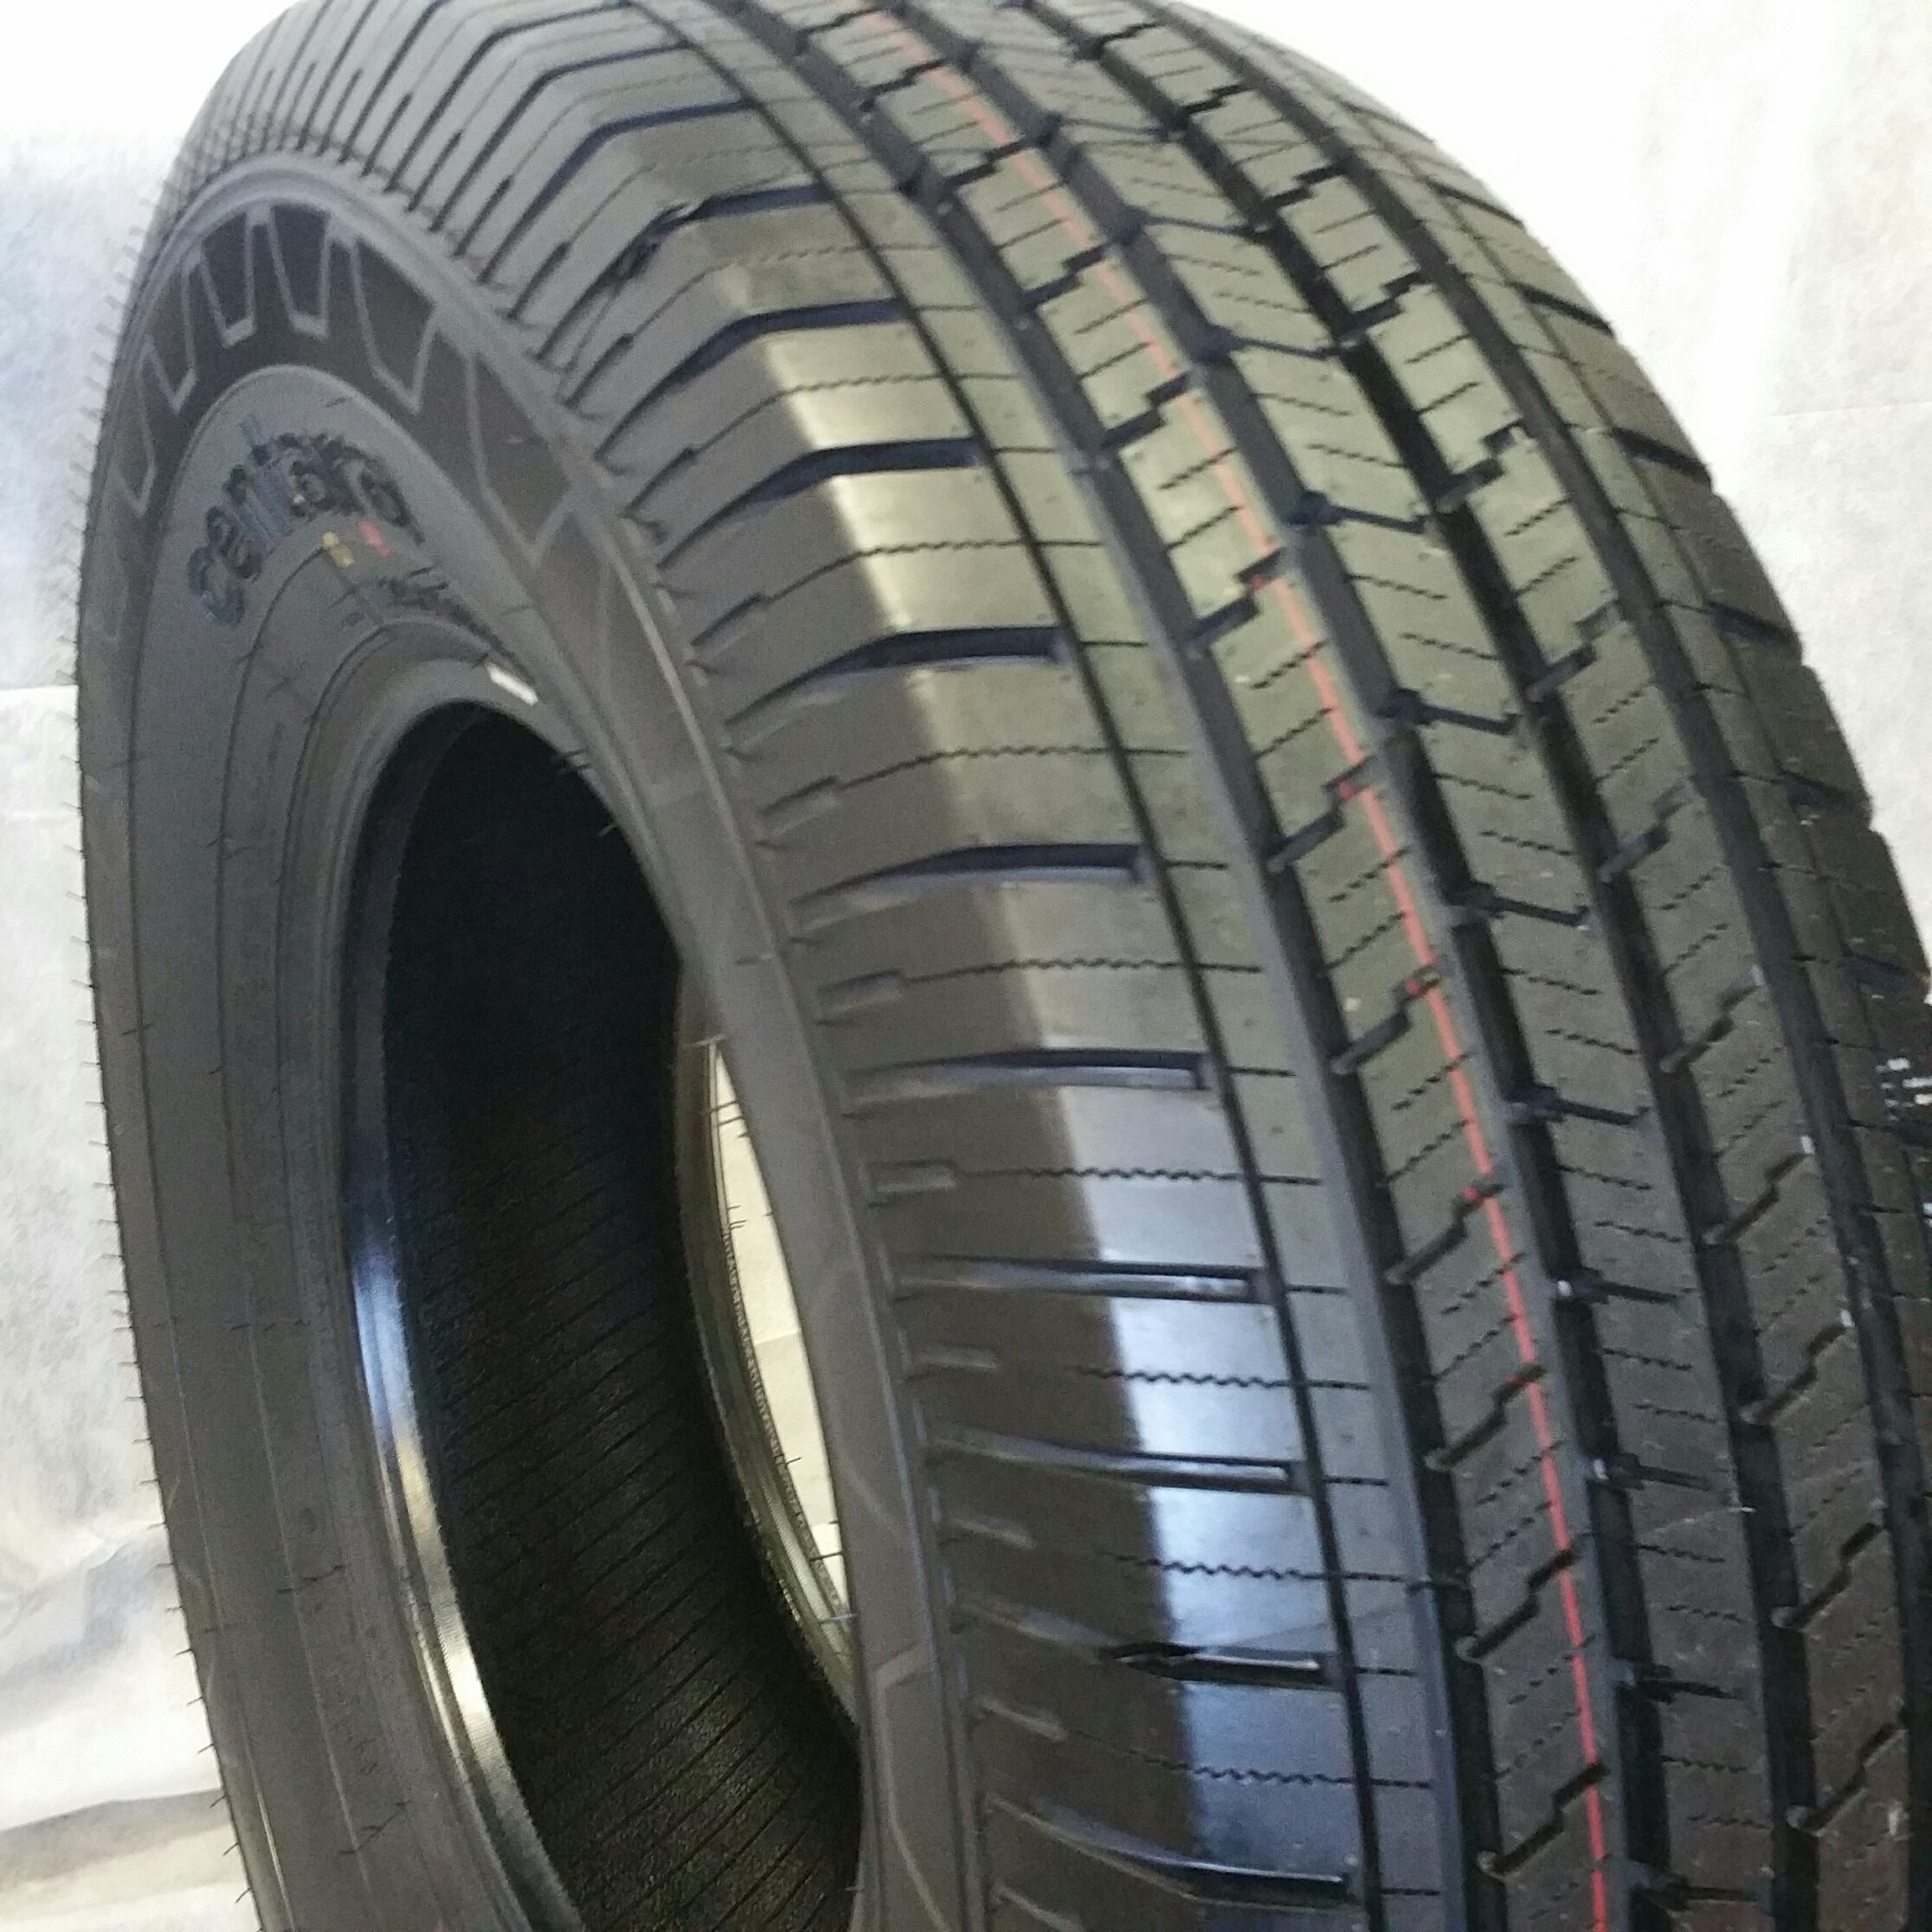 prnewsfoto delivers a tires season lt performance t launches lighting truck with all tire advantage bfgoodrich ta light